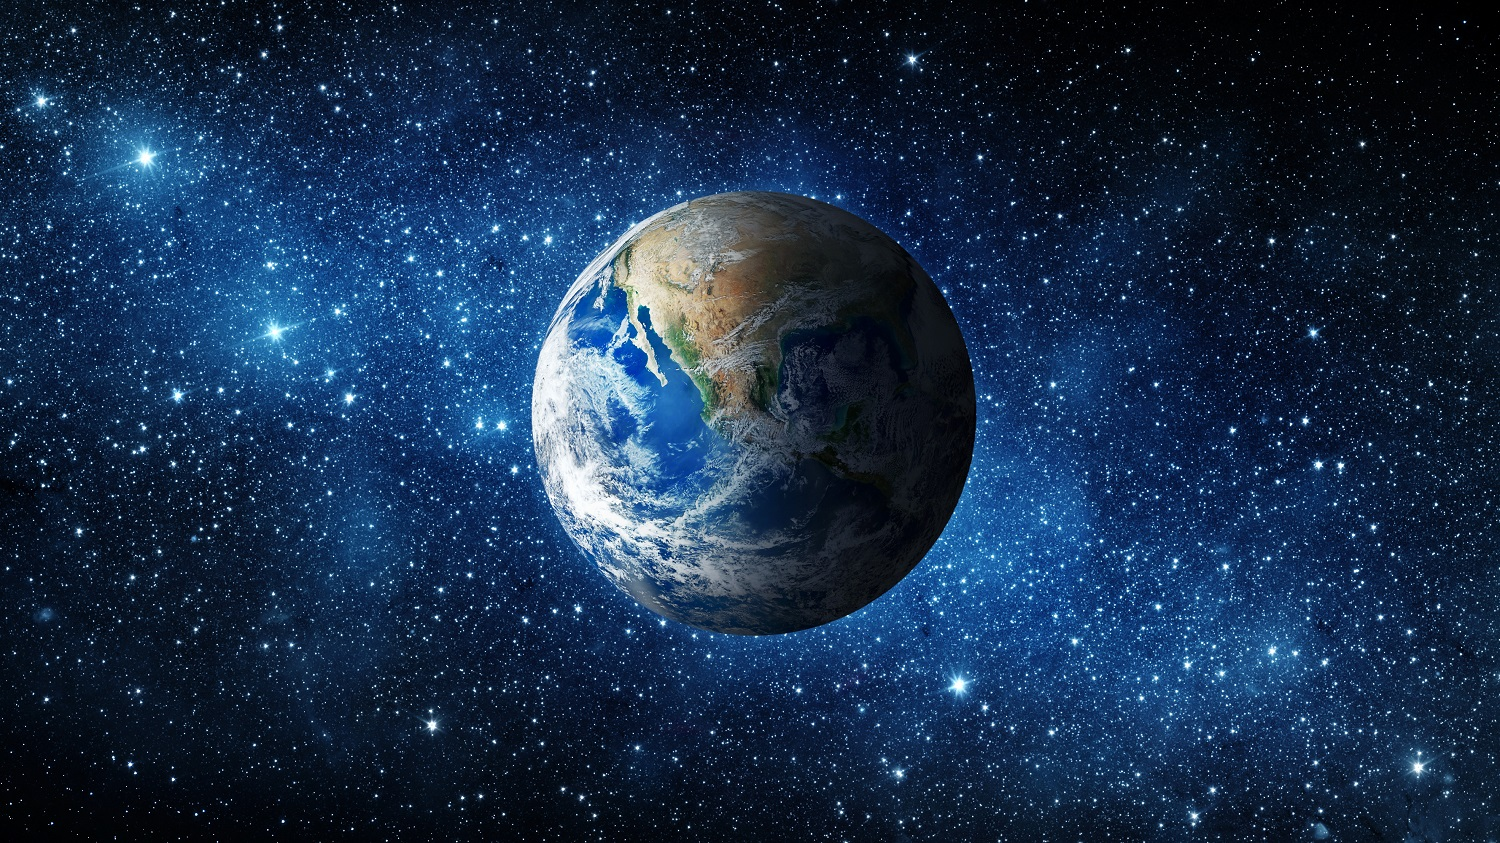 Bizarre Facts The Flat-Earthers Believe - Grunge